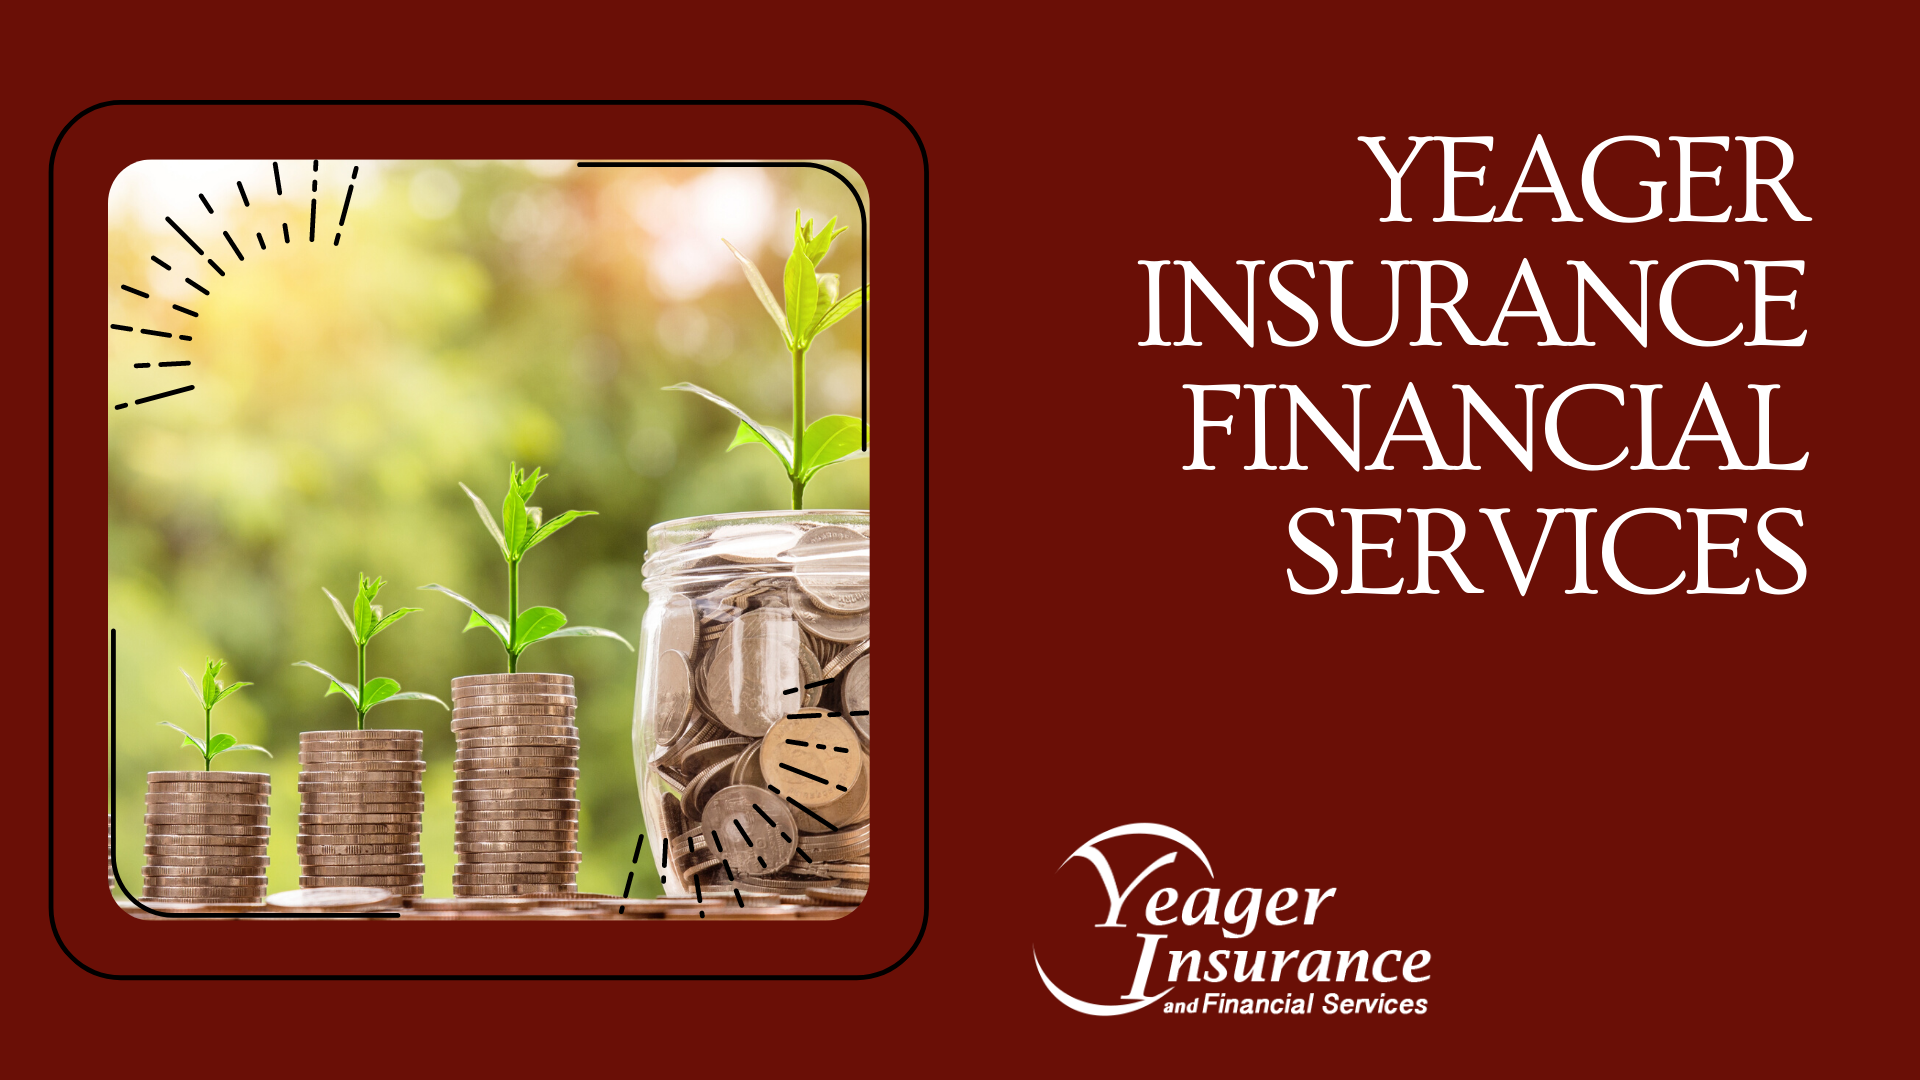 Yeager Insurance and Financial Services - What we can do for you ...